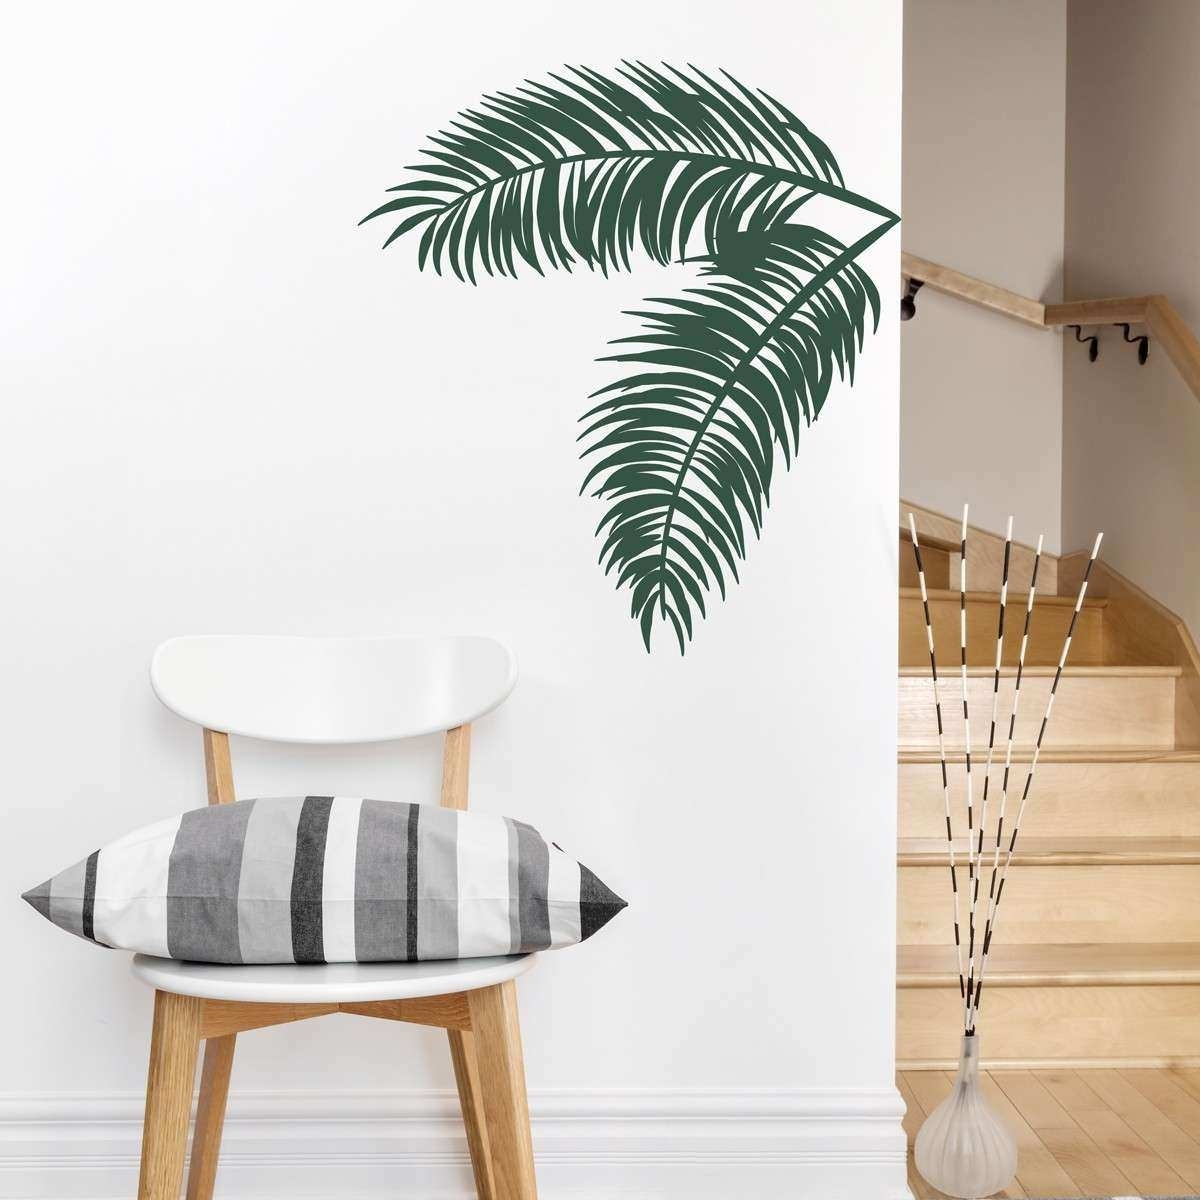 Awesome Palm Tree Wall Art | Wall Art Ideas throughout Palm Tree Wall Art (Image 3 of 20)